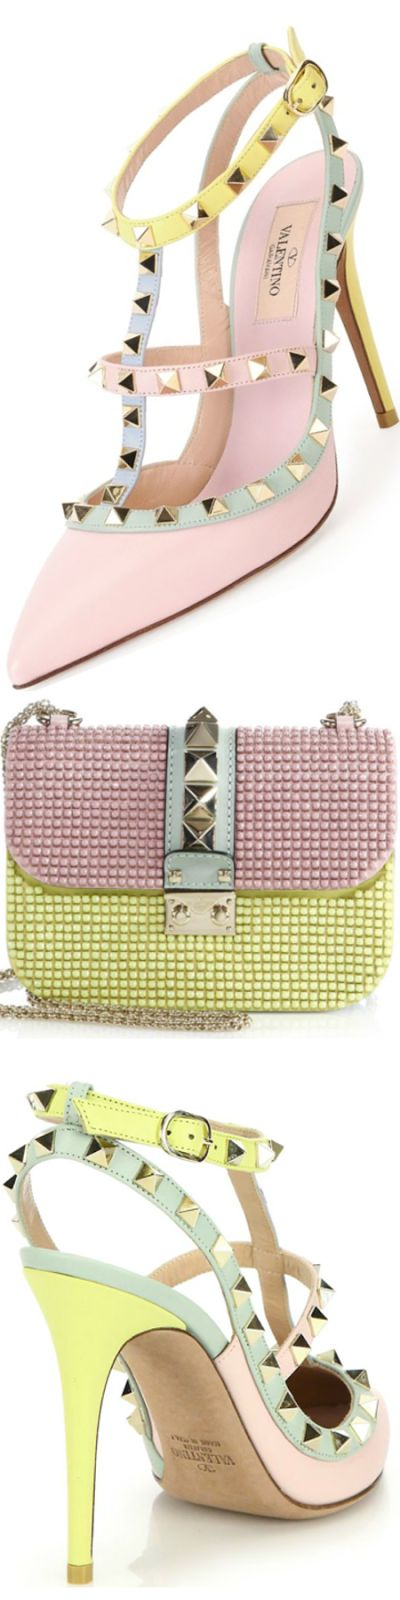 Valentino Rockstud Watercolor Colorblock Leather Pumps and Valentino Lock Small Multicolor Studded Chain Shoulder Bag